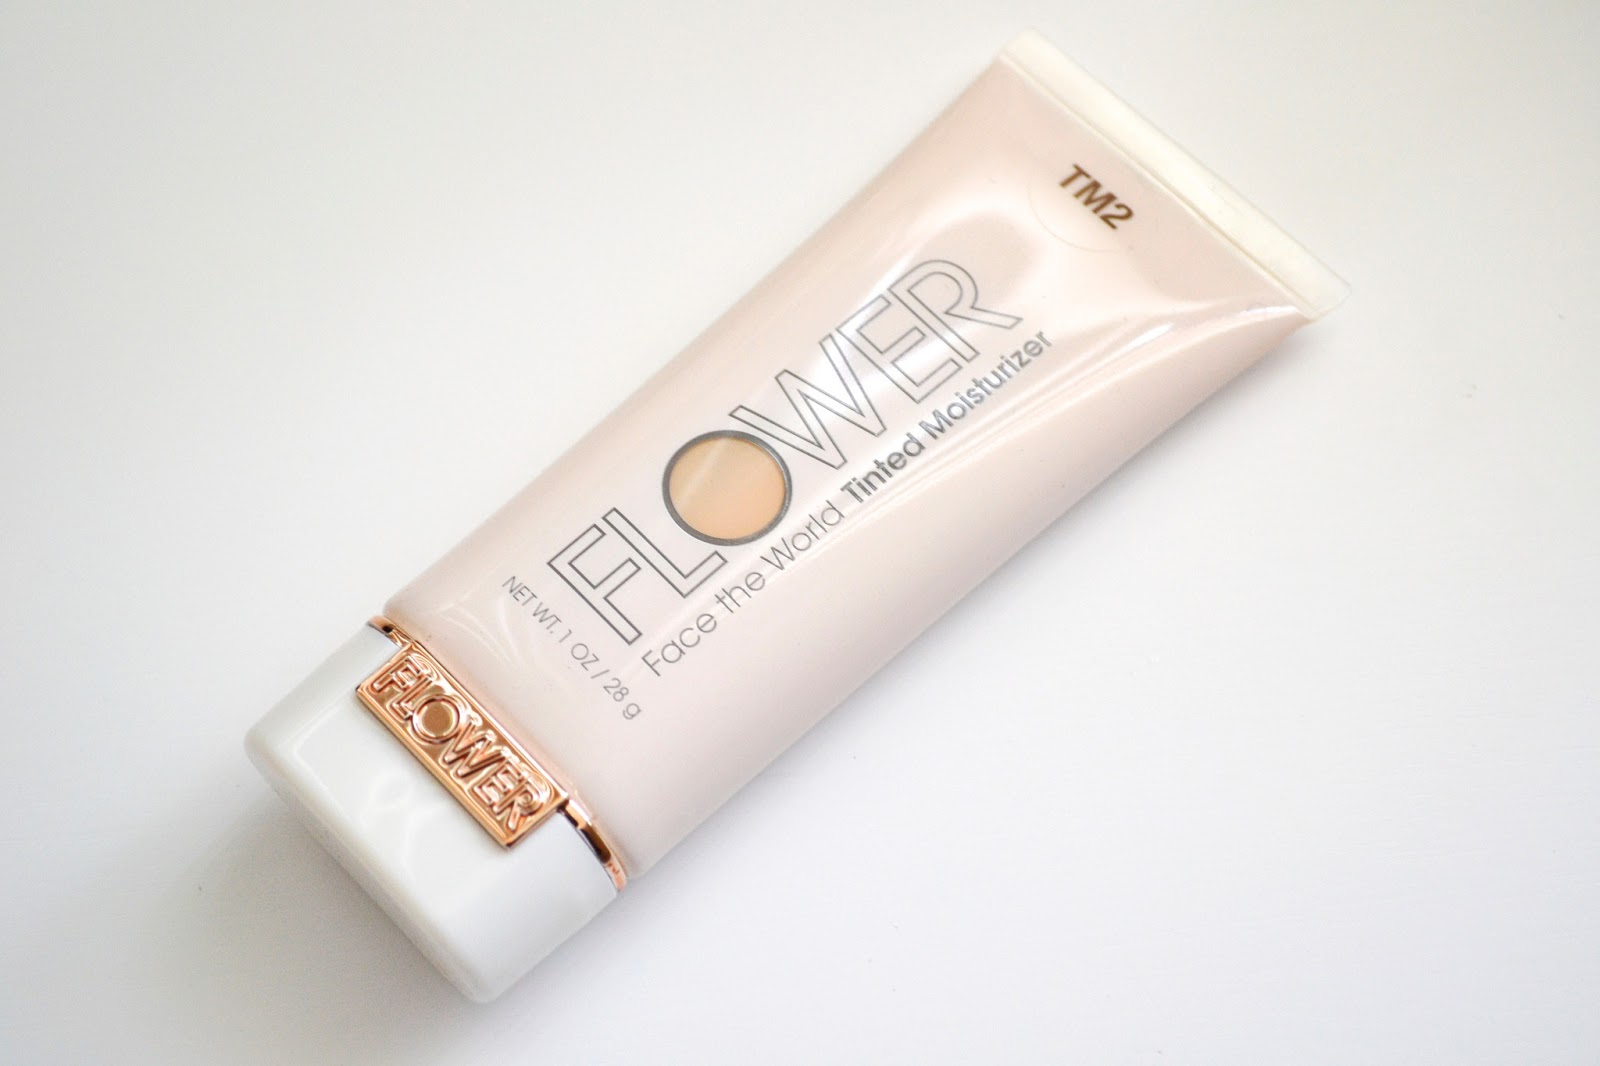 Aquaheart flower beauty face the world tinted moisturizer review may 1 2013 izmirmasajfo